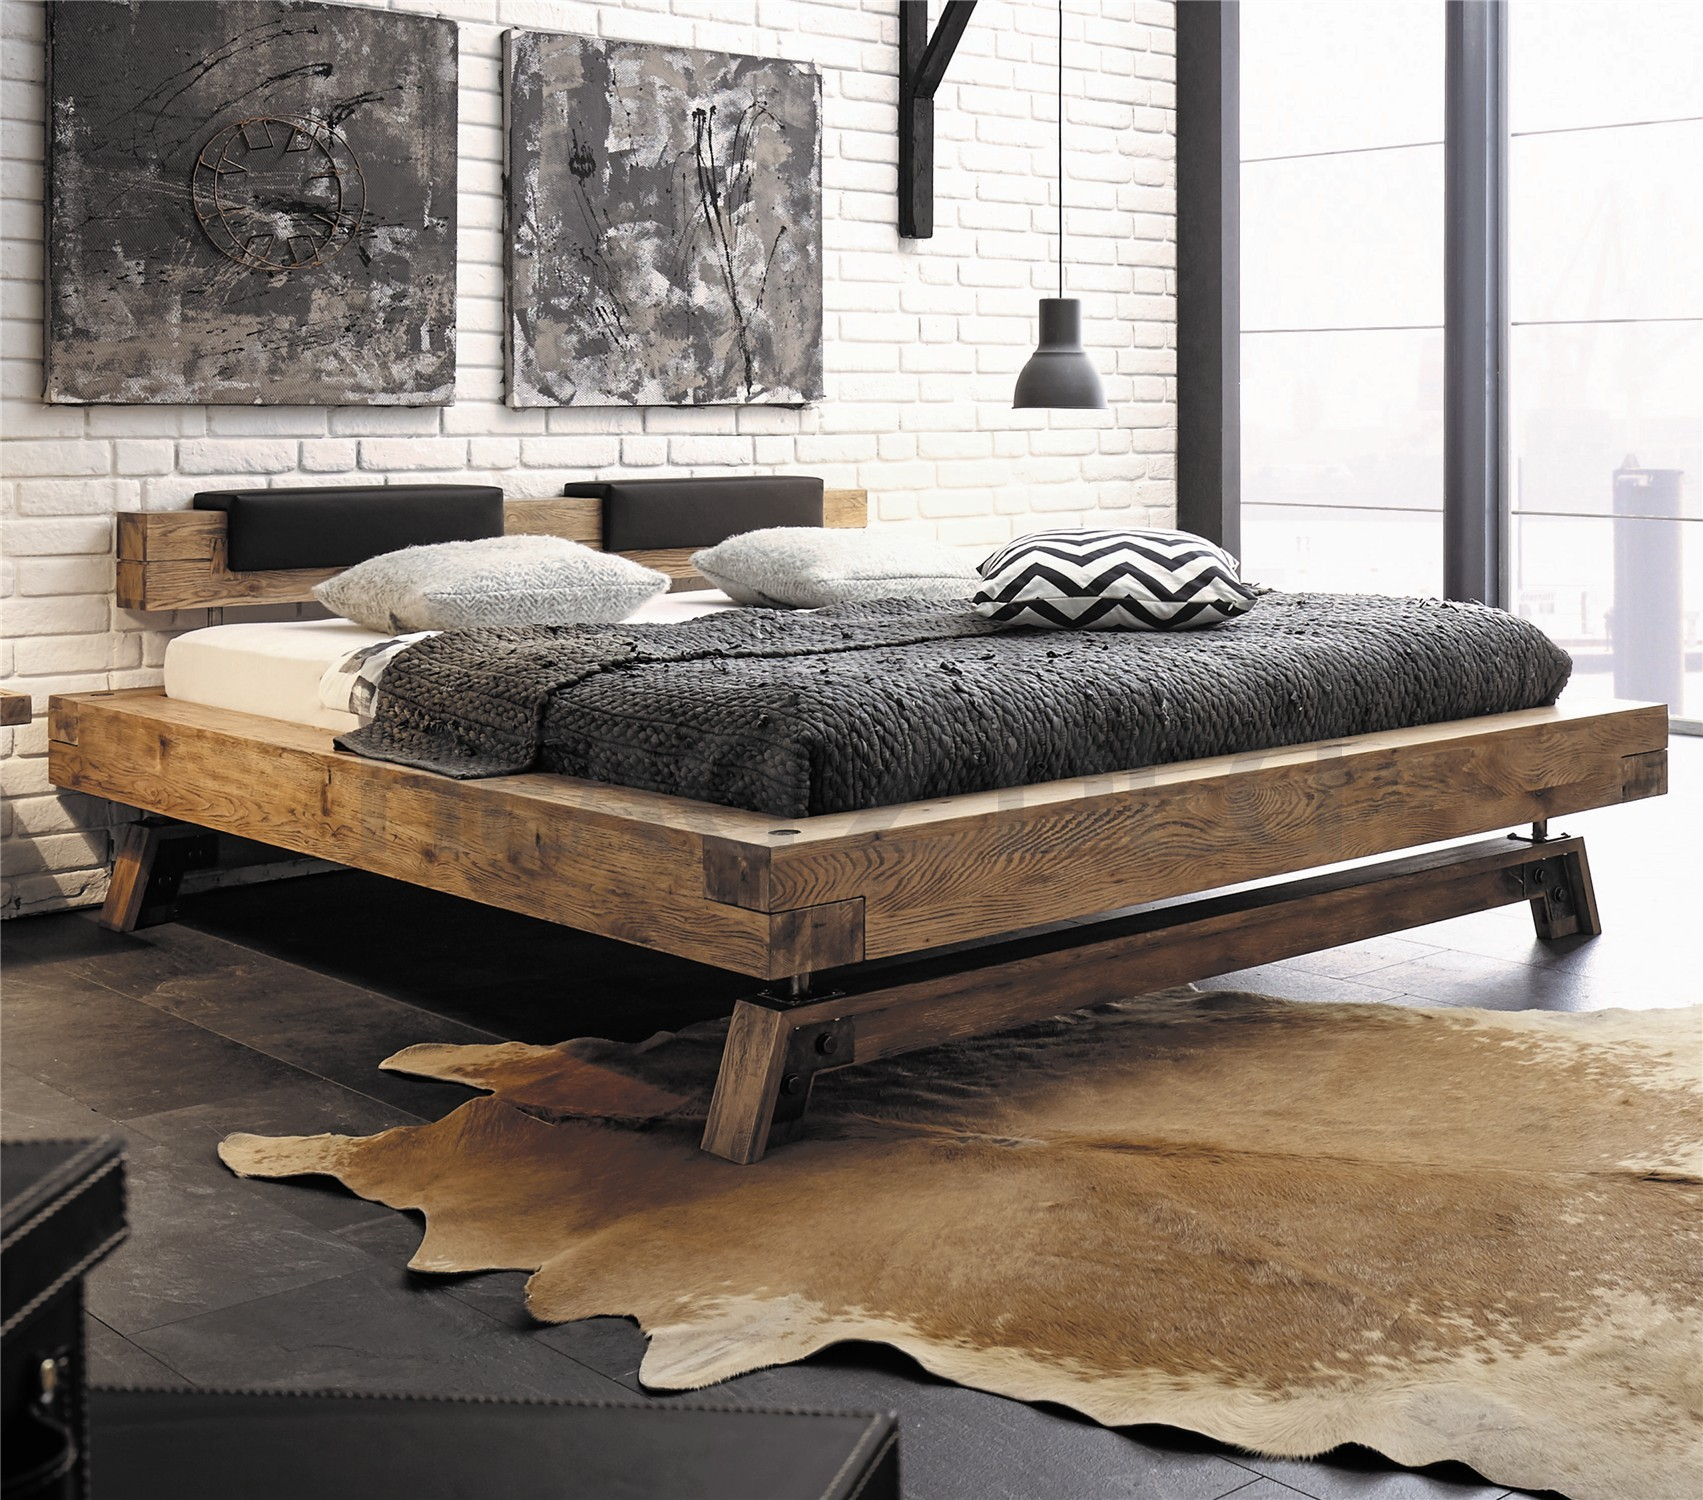 contemporary designer beds 187 hasena bloc stabil inca nakio 14561 | hasena bloc stabil inca nakio character solid oak in vintage finish id 14561